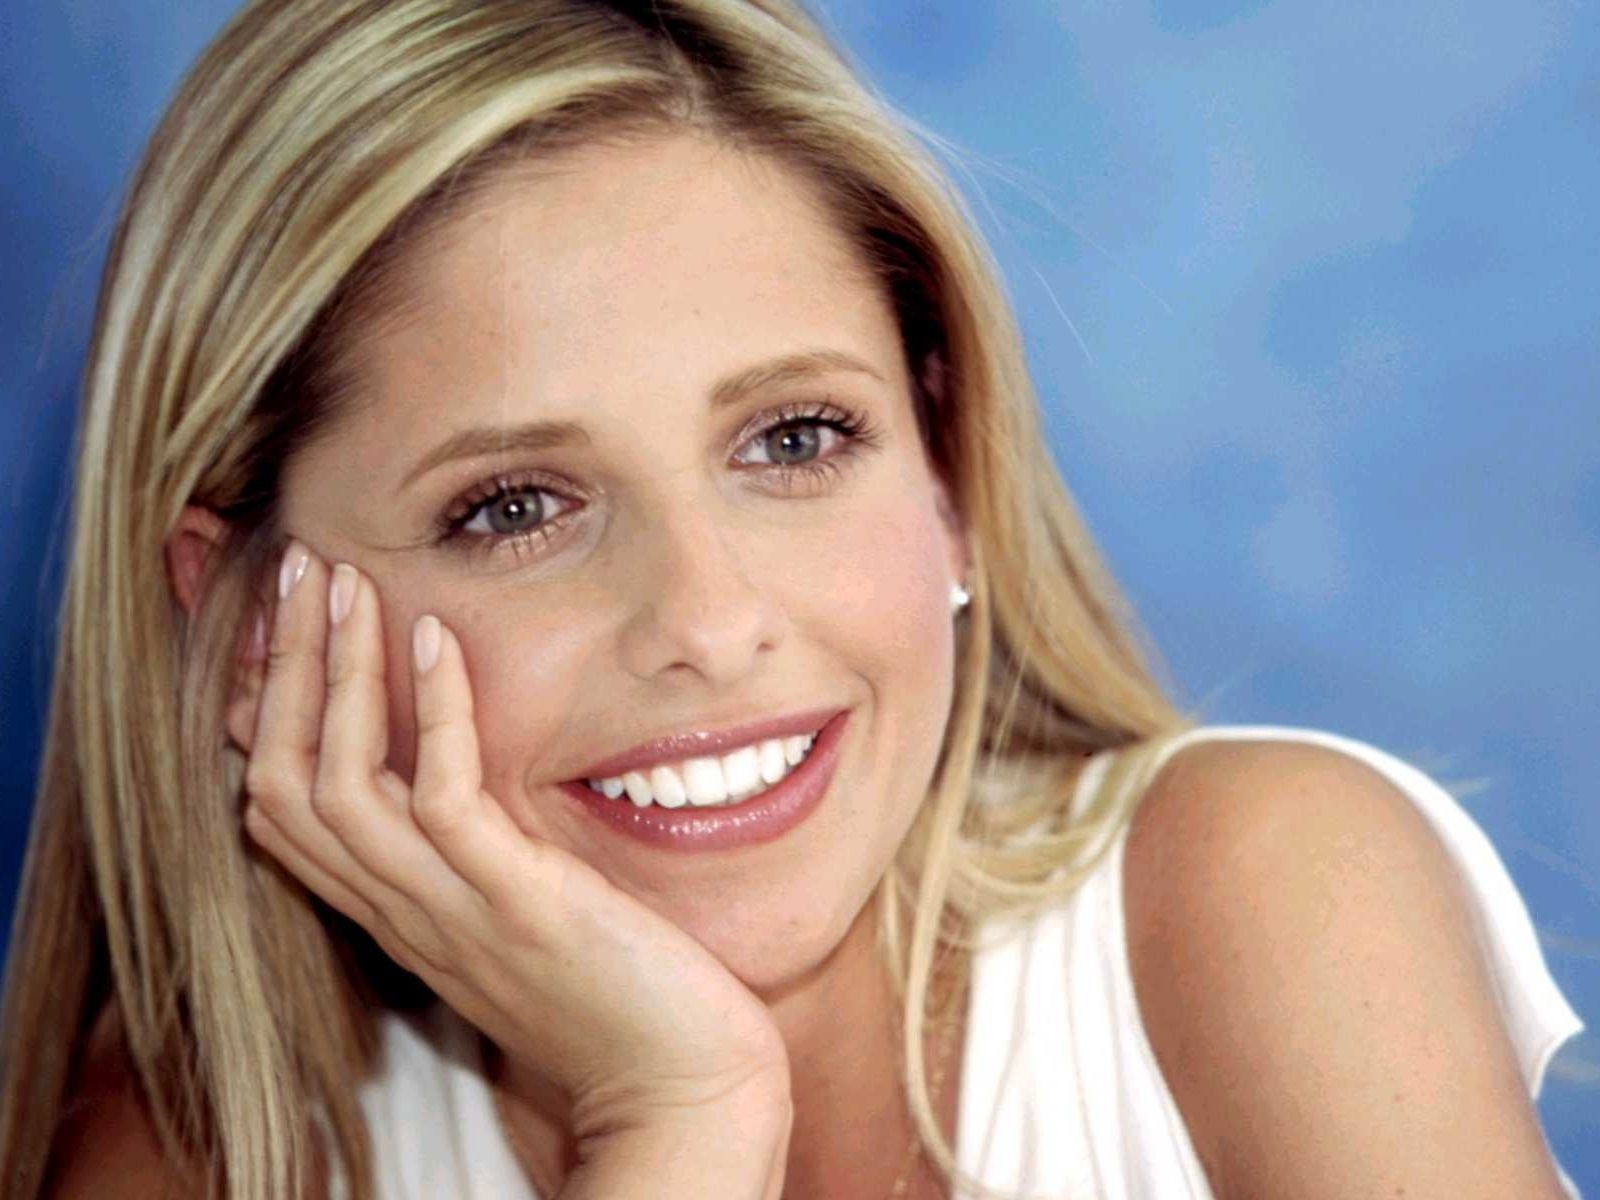 Wallpaper - la fascinosa Sarah Michelle Gellar, attrice di numerosi horror made in USA